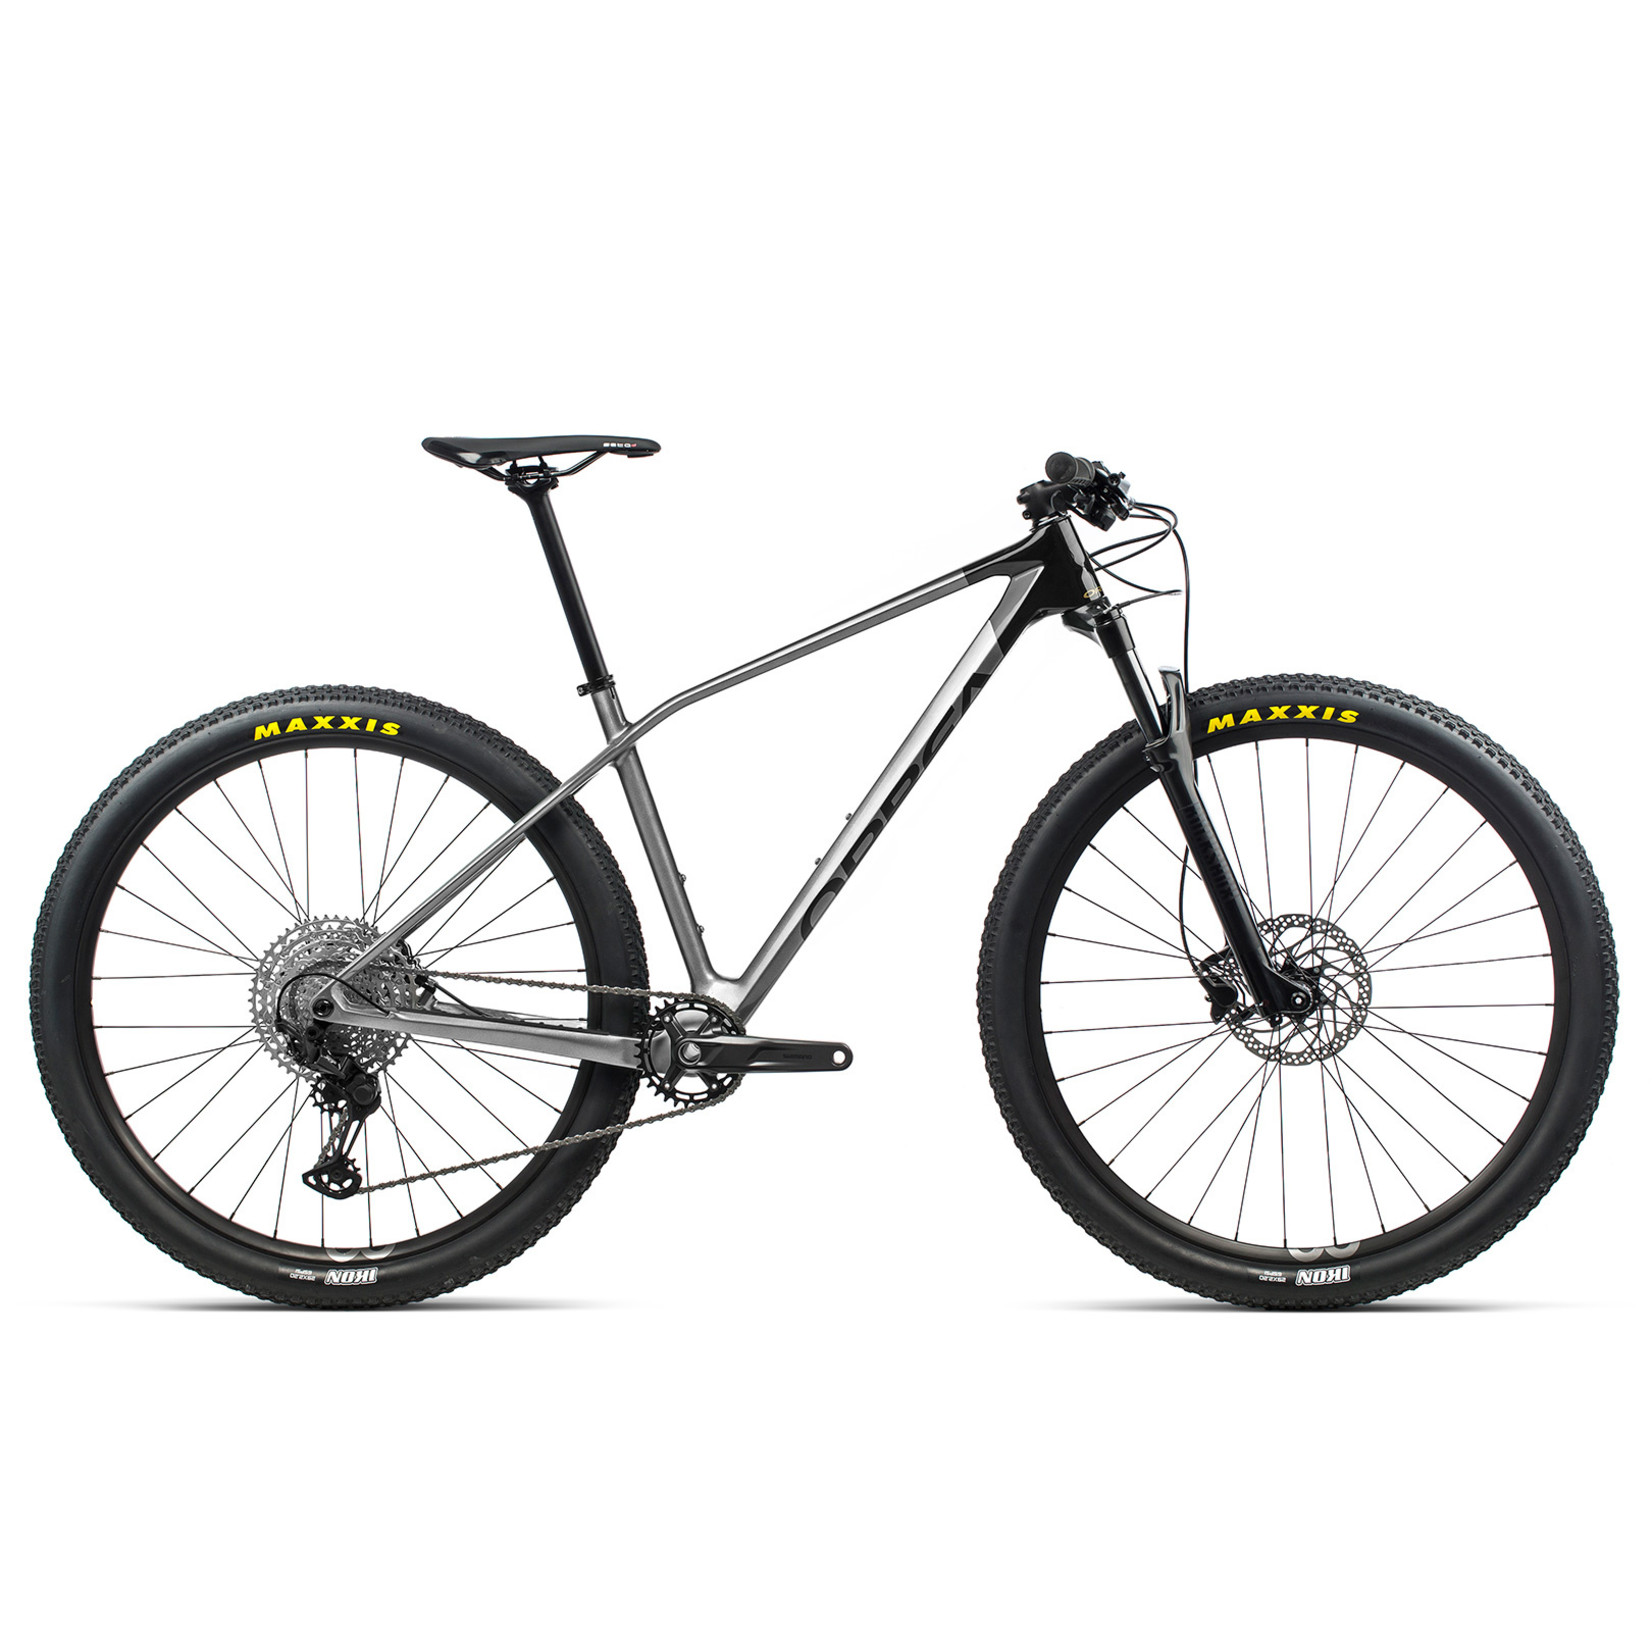 Orbea ORBEA ALMA M50 LARGE Anthracite Gliltter Black Gloss Coming Oct 2021